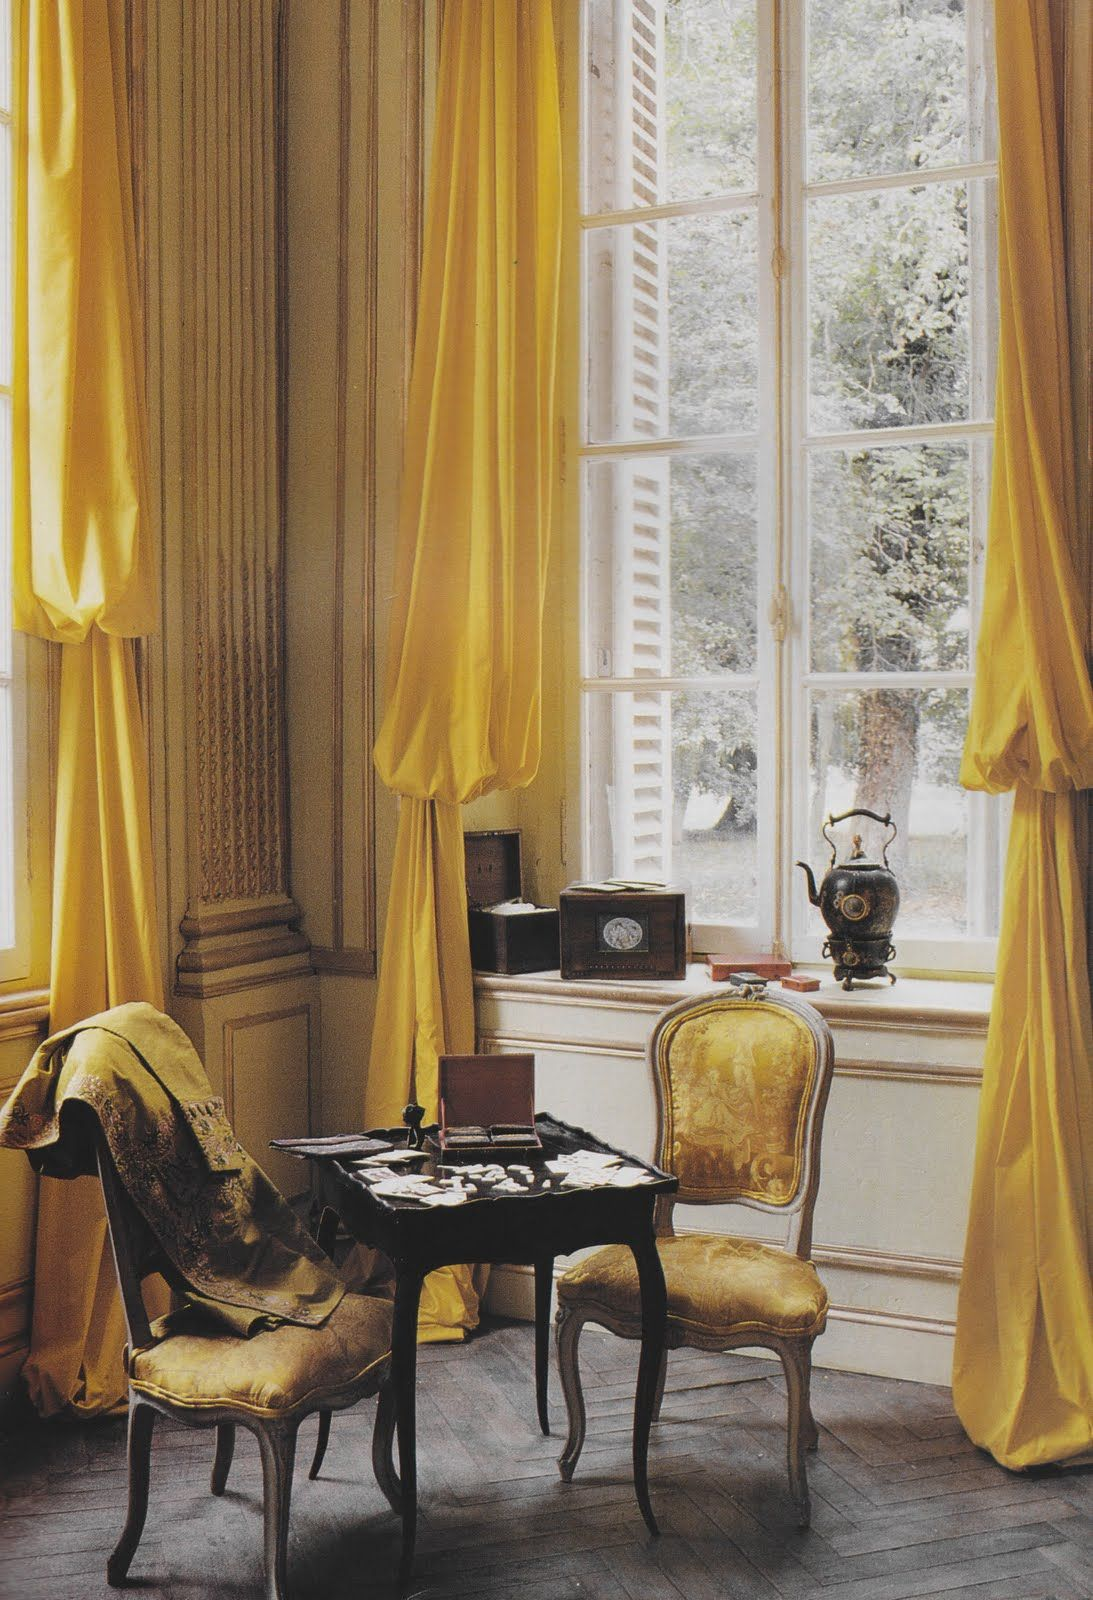 French Interior Design: The Essence Of Frenchness: Décembre 2010